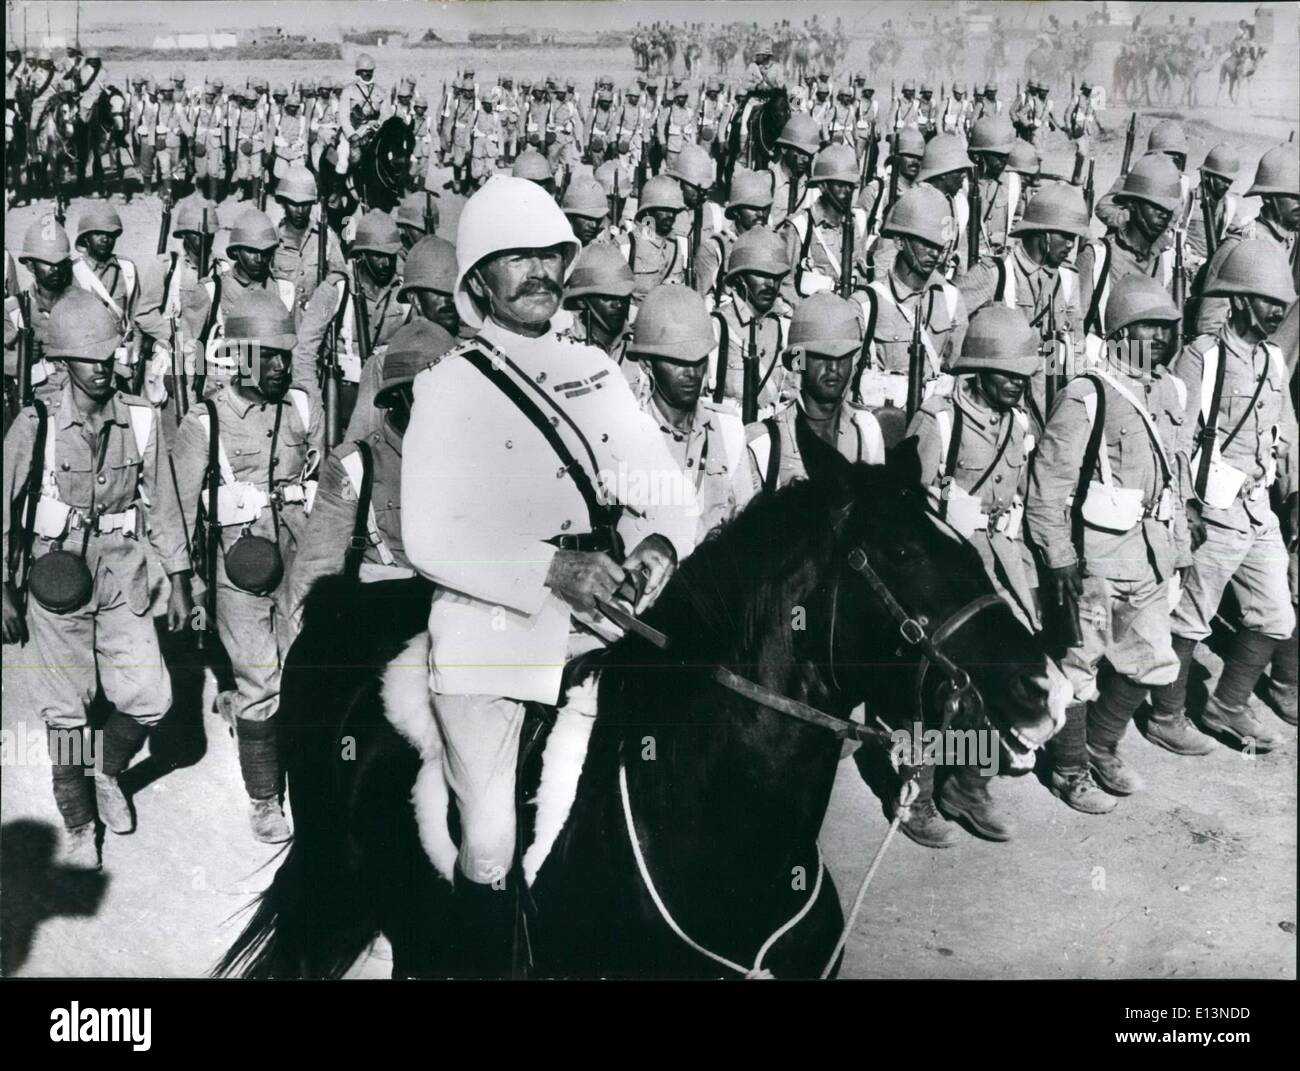 Mar. 22, 2012 - Into Battle With Simon Ward As ''Young Winston'': In the September 1898 Battle of Omdurman, in the Stock Photo